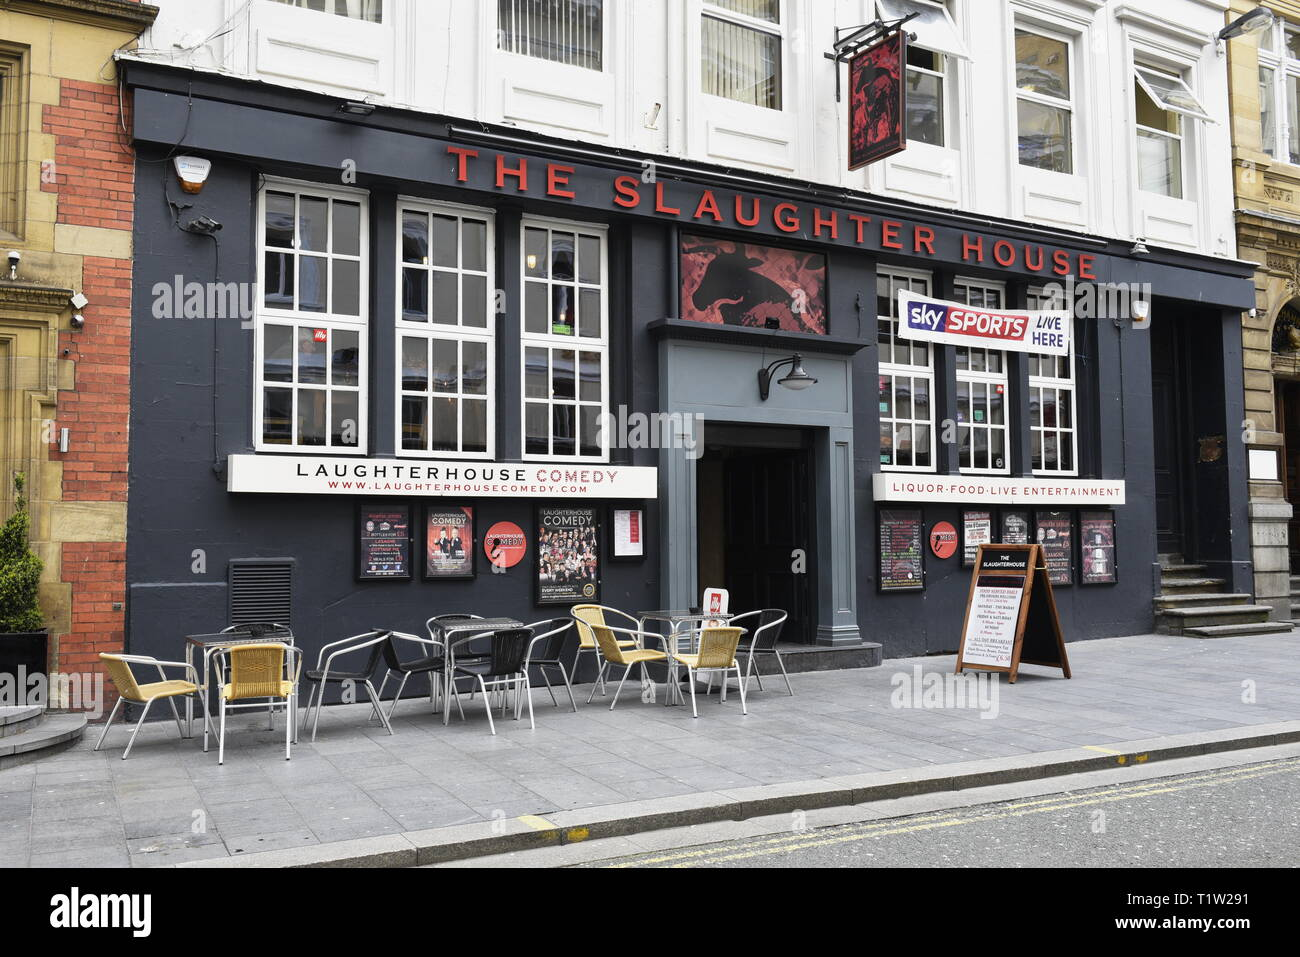 The Slaughter House, 13-15 Fenwick St, Liverpool L2 7LS. Traditional pub food, live sport, live music and home to Laughterhouse Comedy. - Stock Image